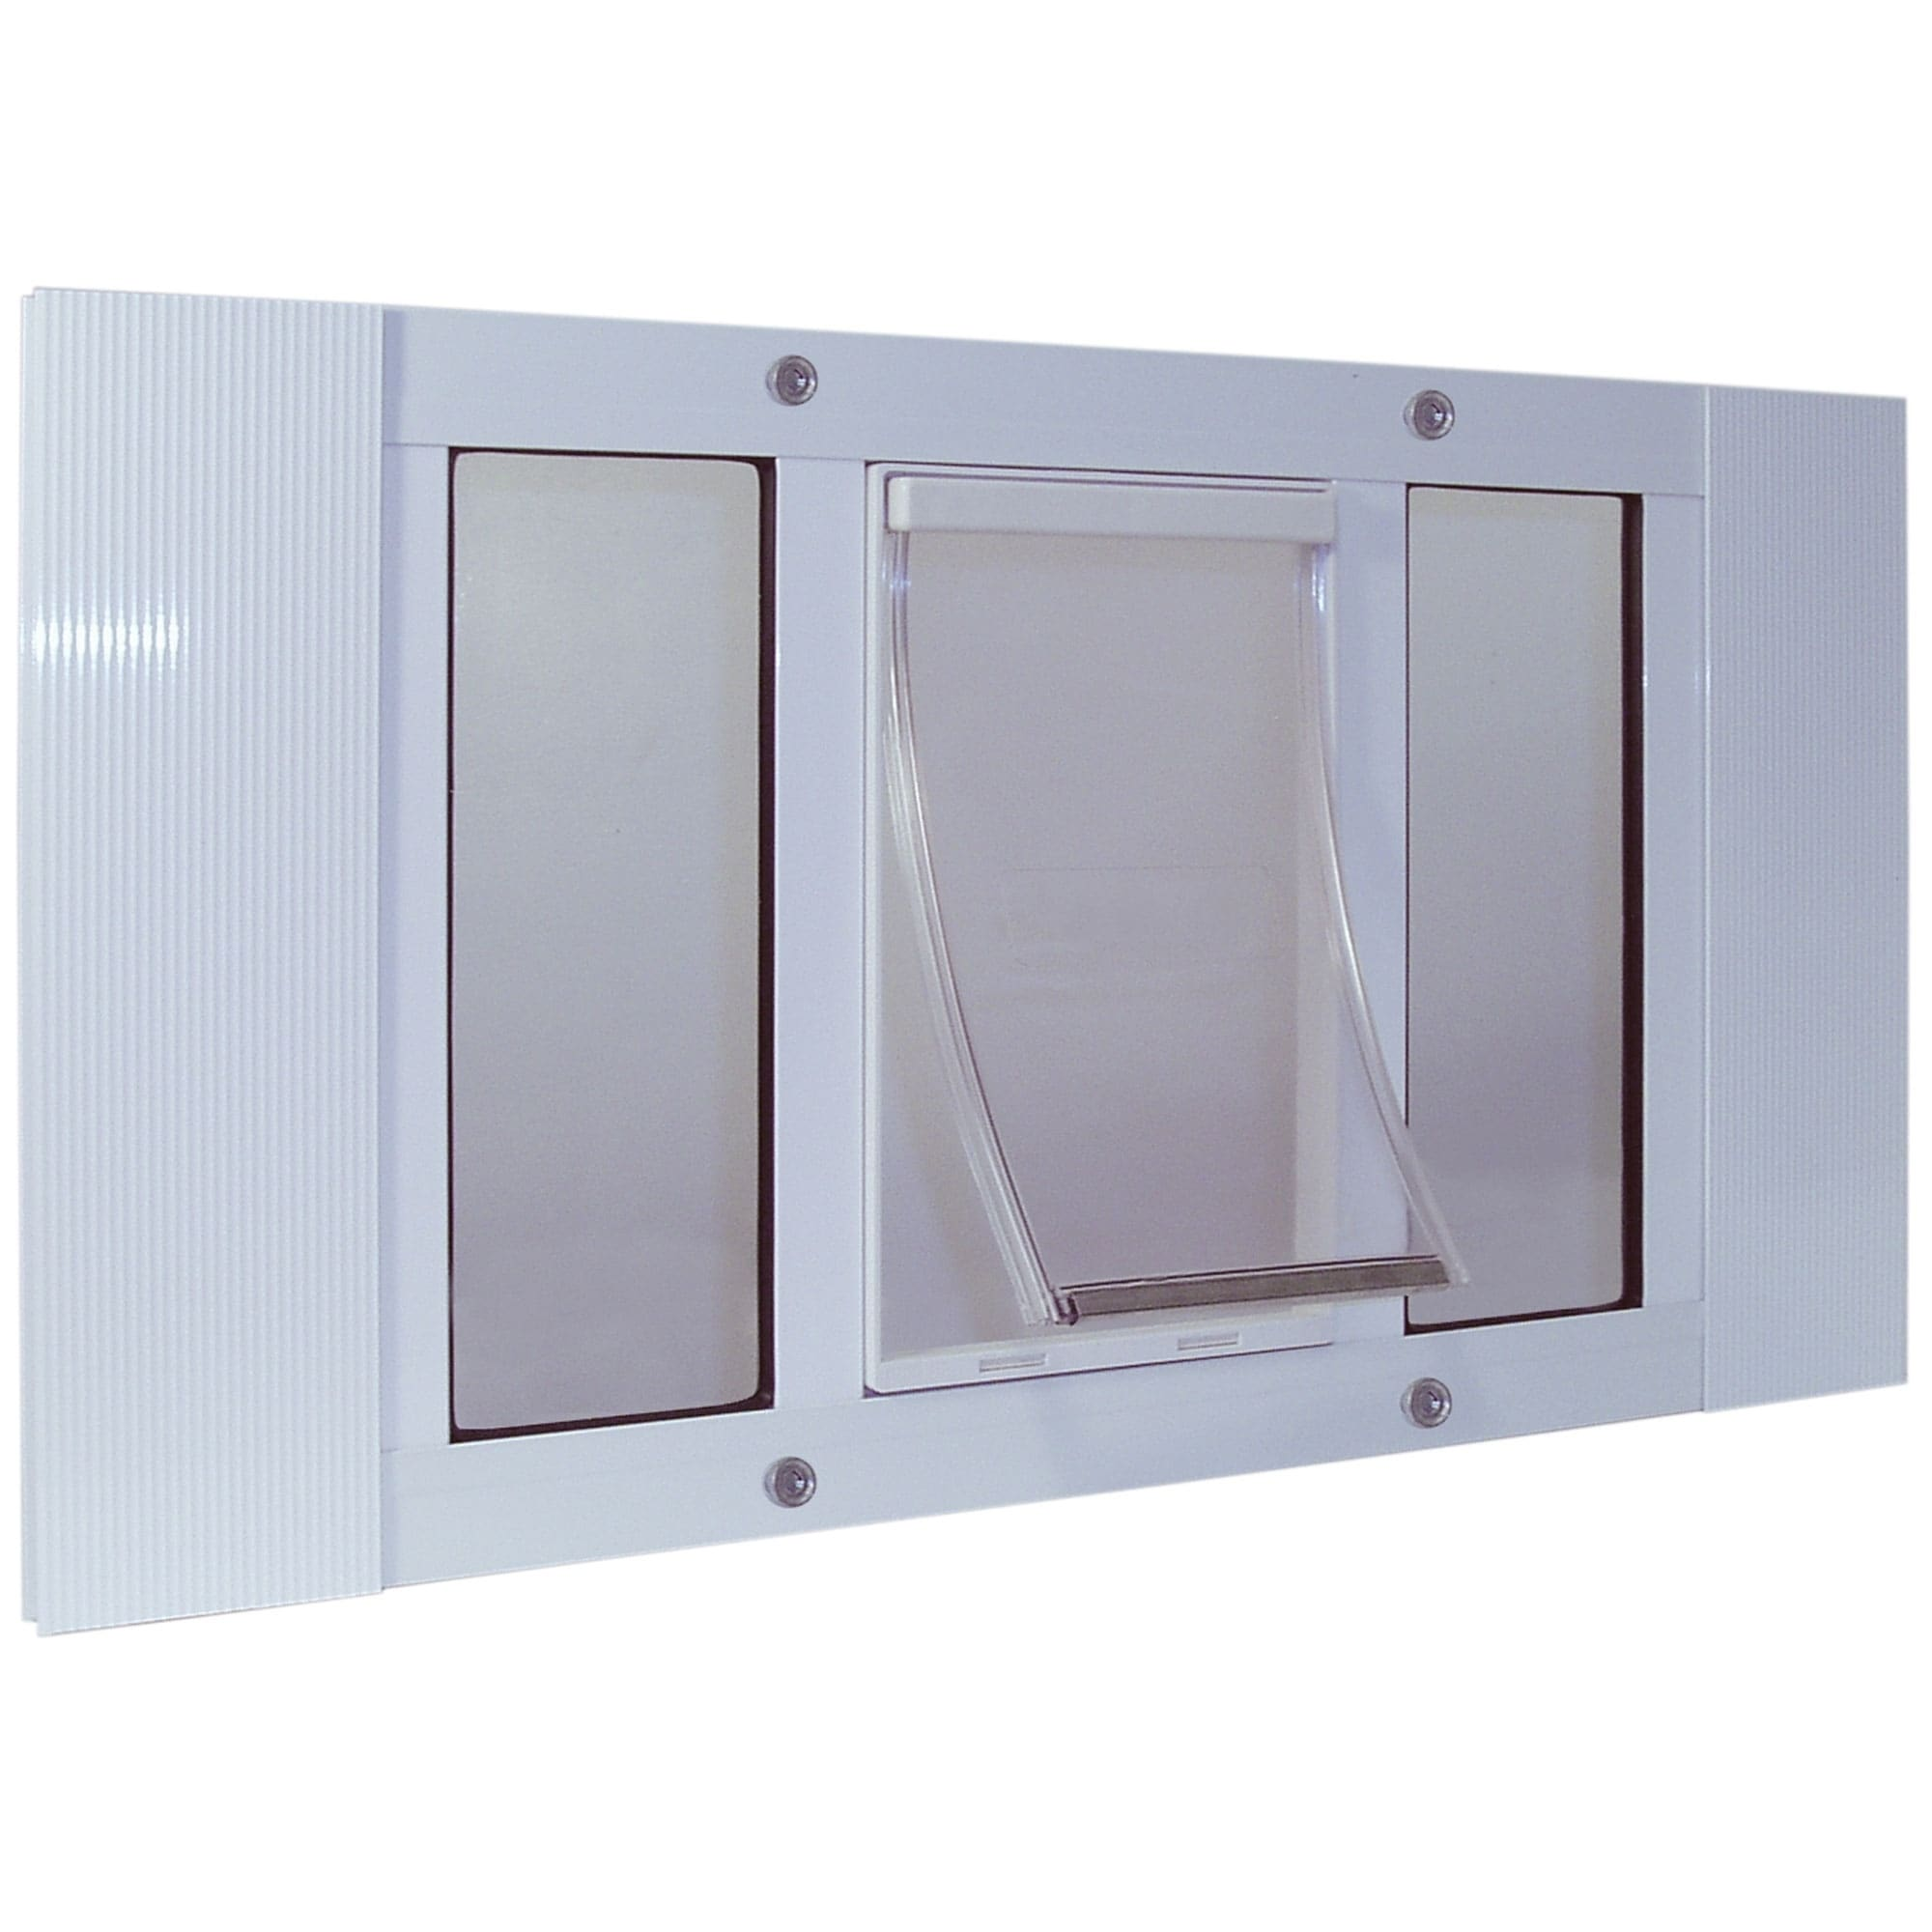 Ideal Pet Products Aluminum Sash Pet Door Small White 1.75 x 33 x 12.56